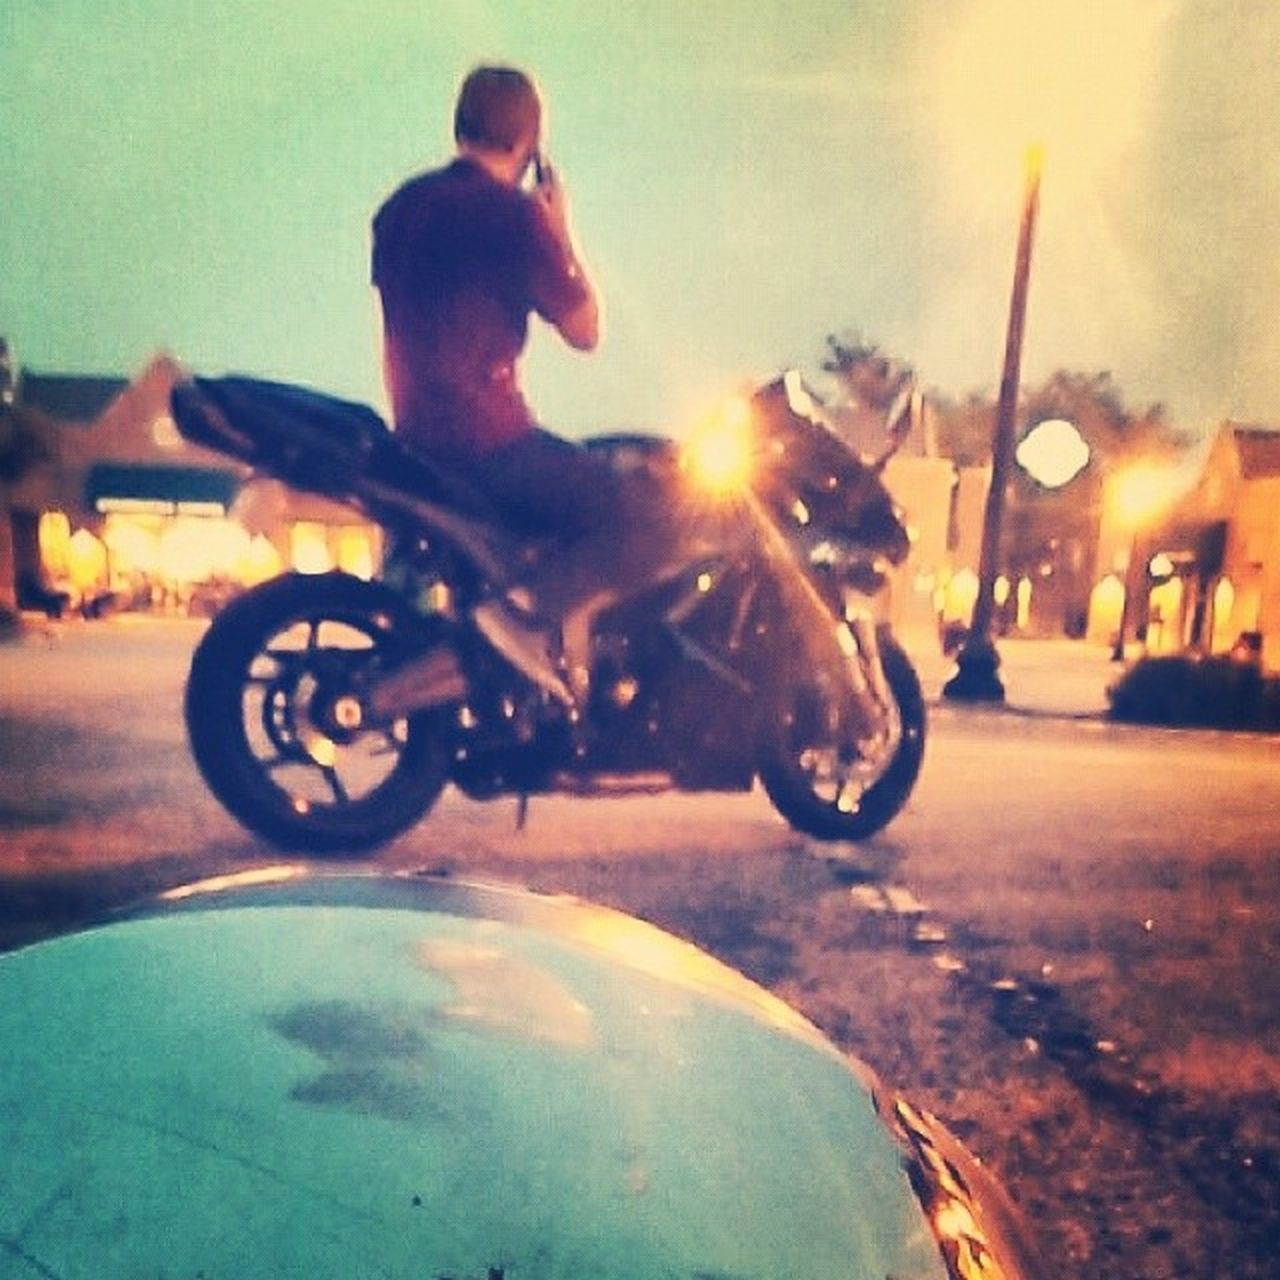 real people, street, one person, outdoors, transportation, men, motion, motorcycle, day, full length, city, sky, close-up, one man only, people